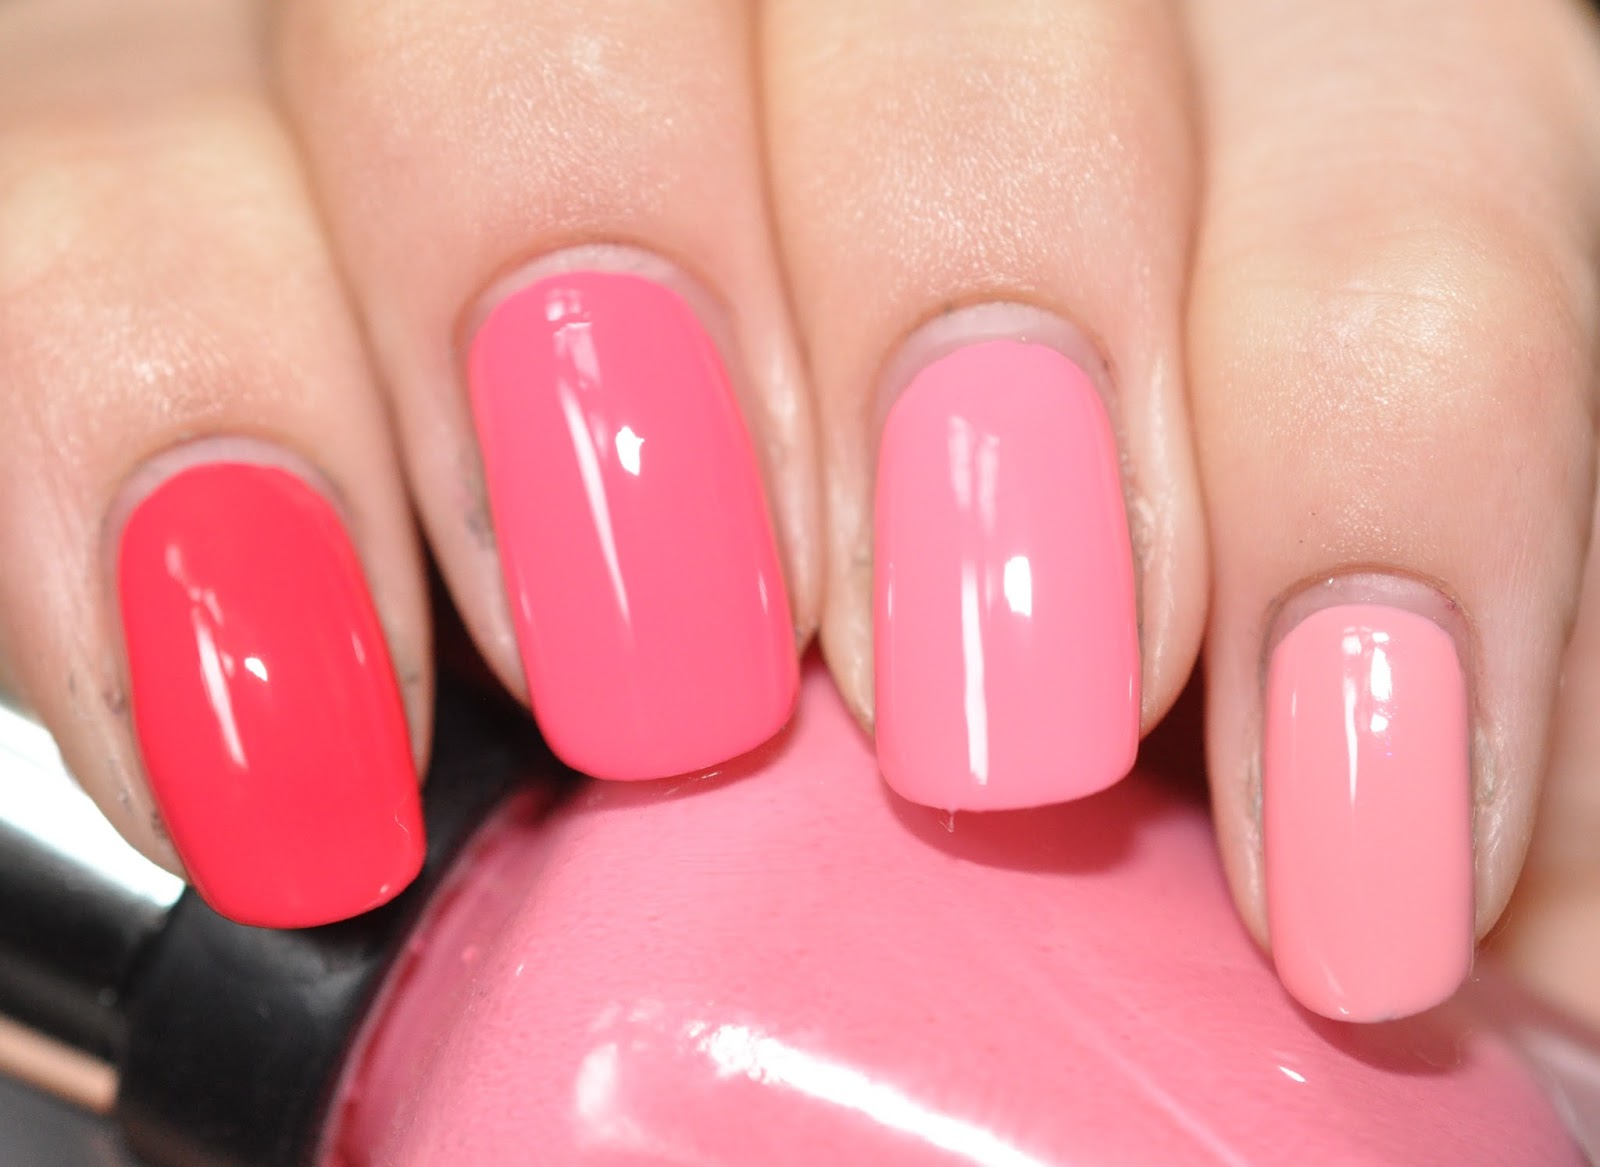 FavoriteNails 31 Tage Nail Art Challenge - Tag 10 - Ombru00e9